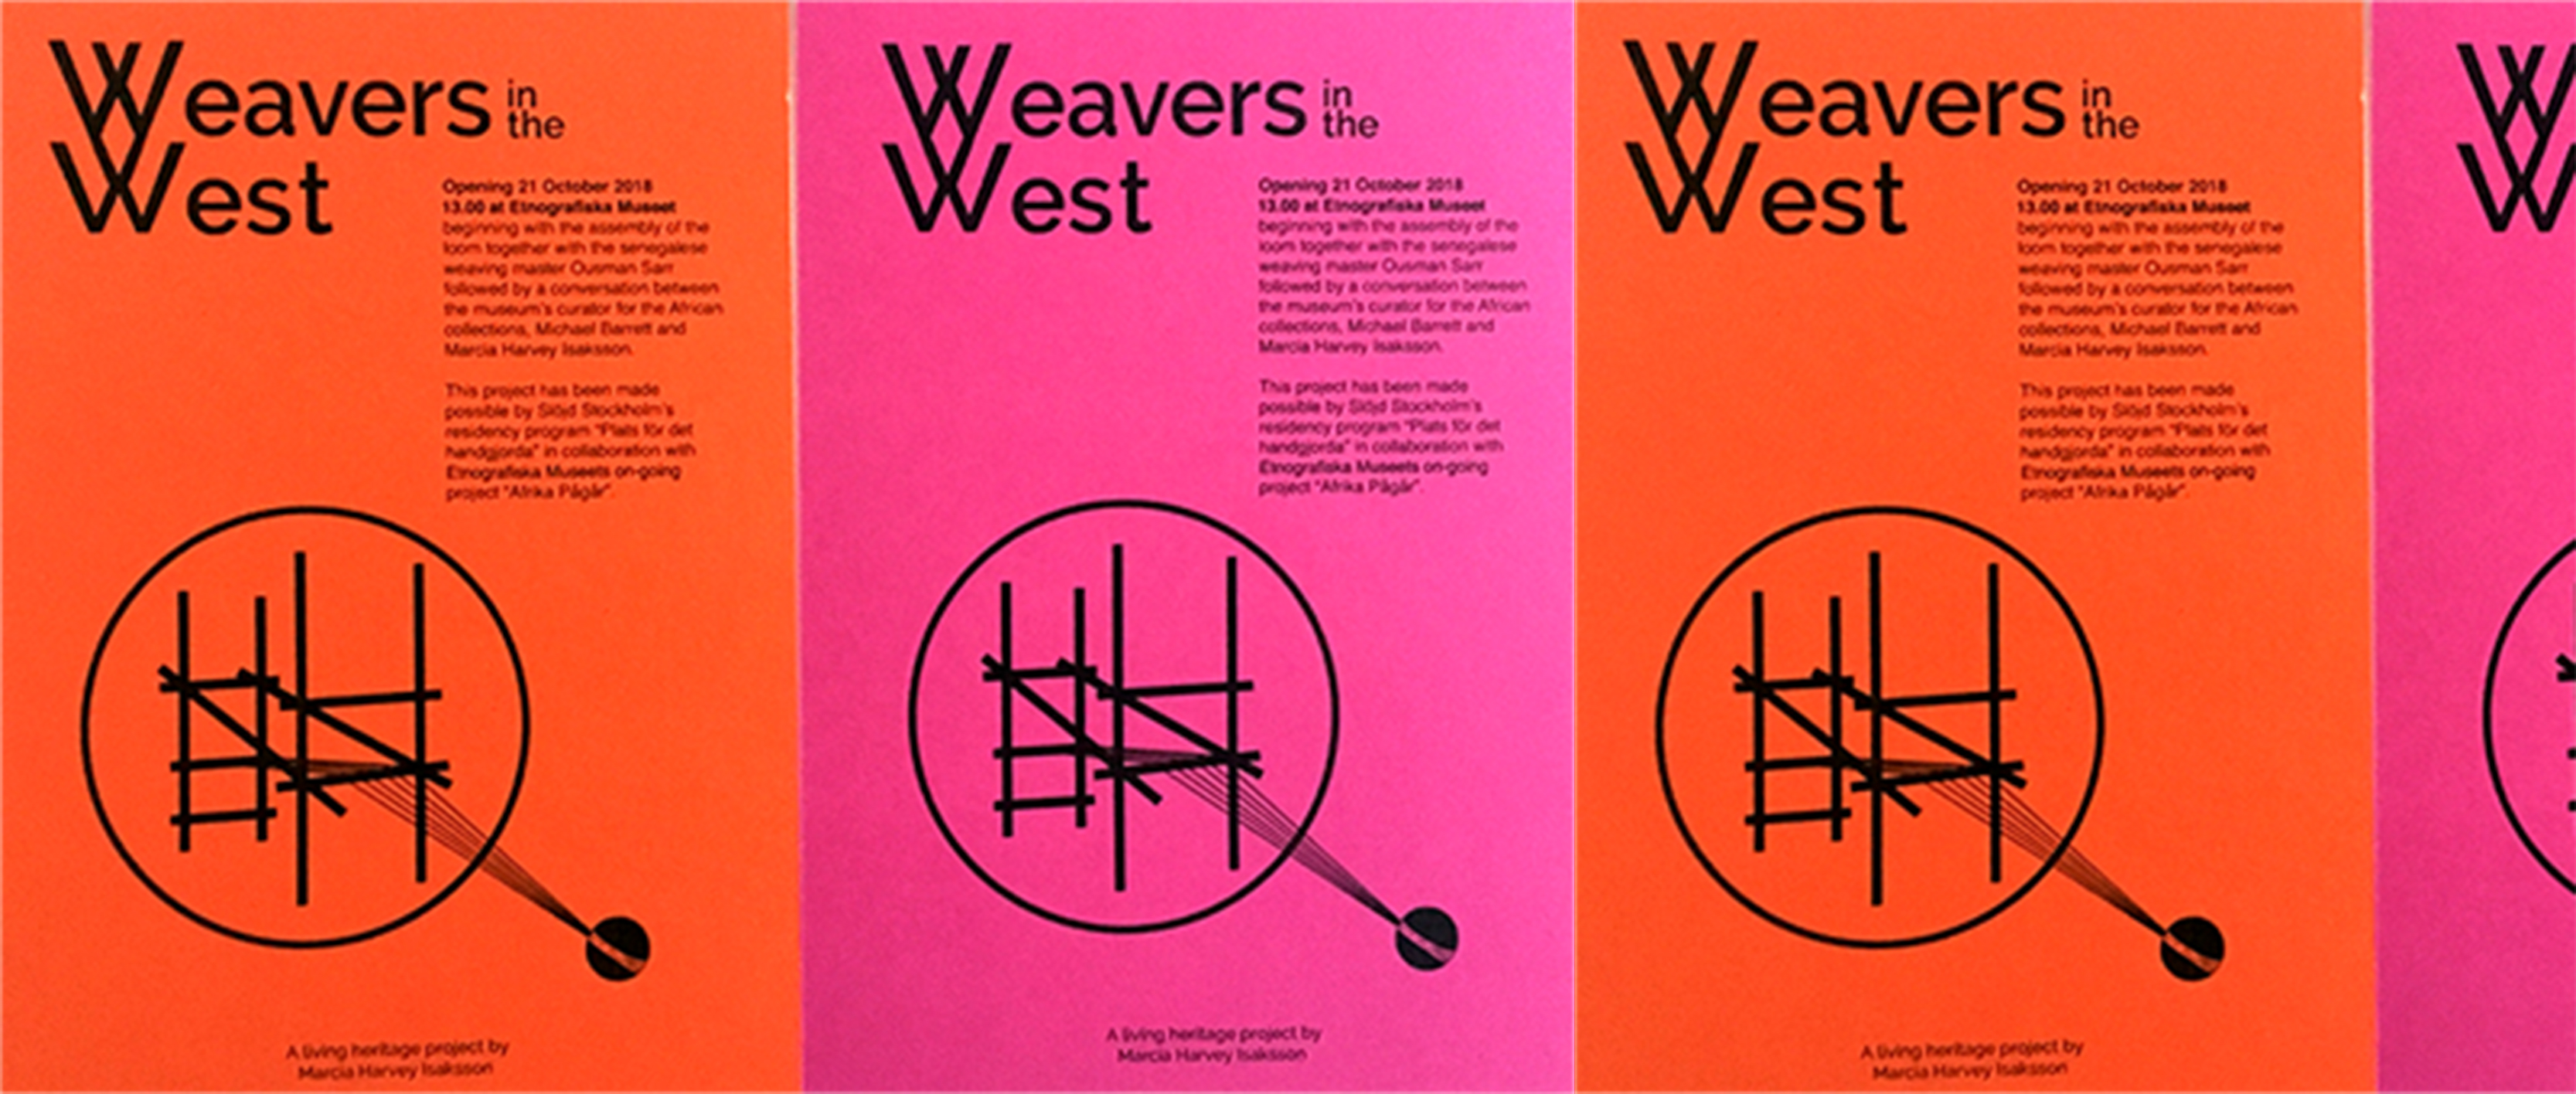 Weavers in the west